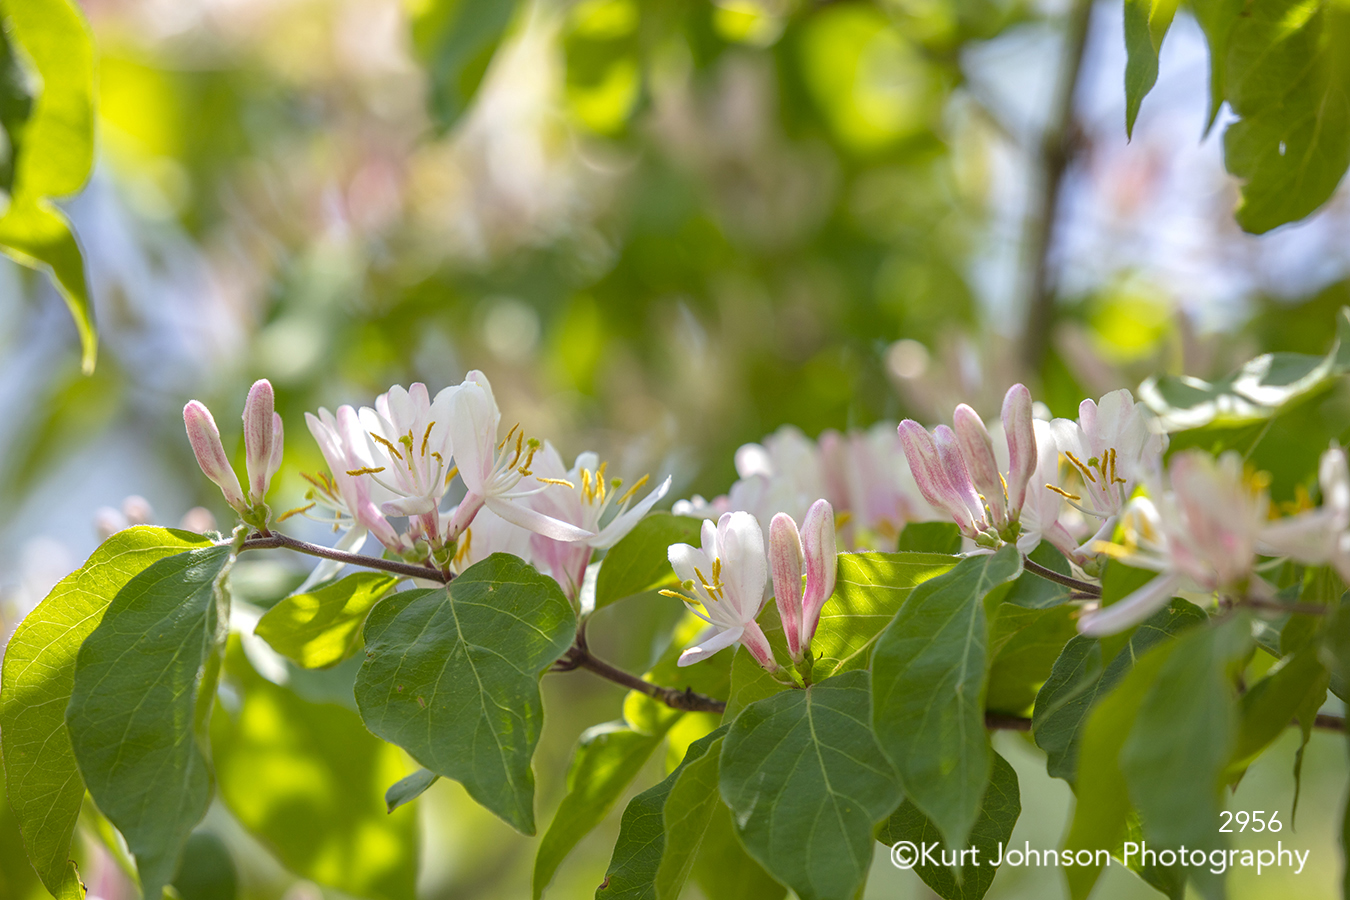 pink spring flower flowers green leaves branch tree close up detail